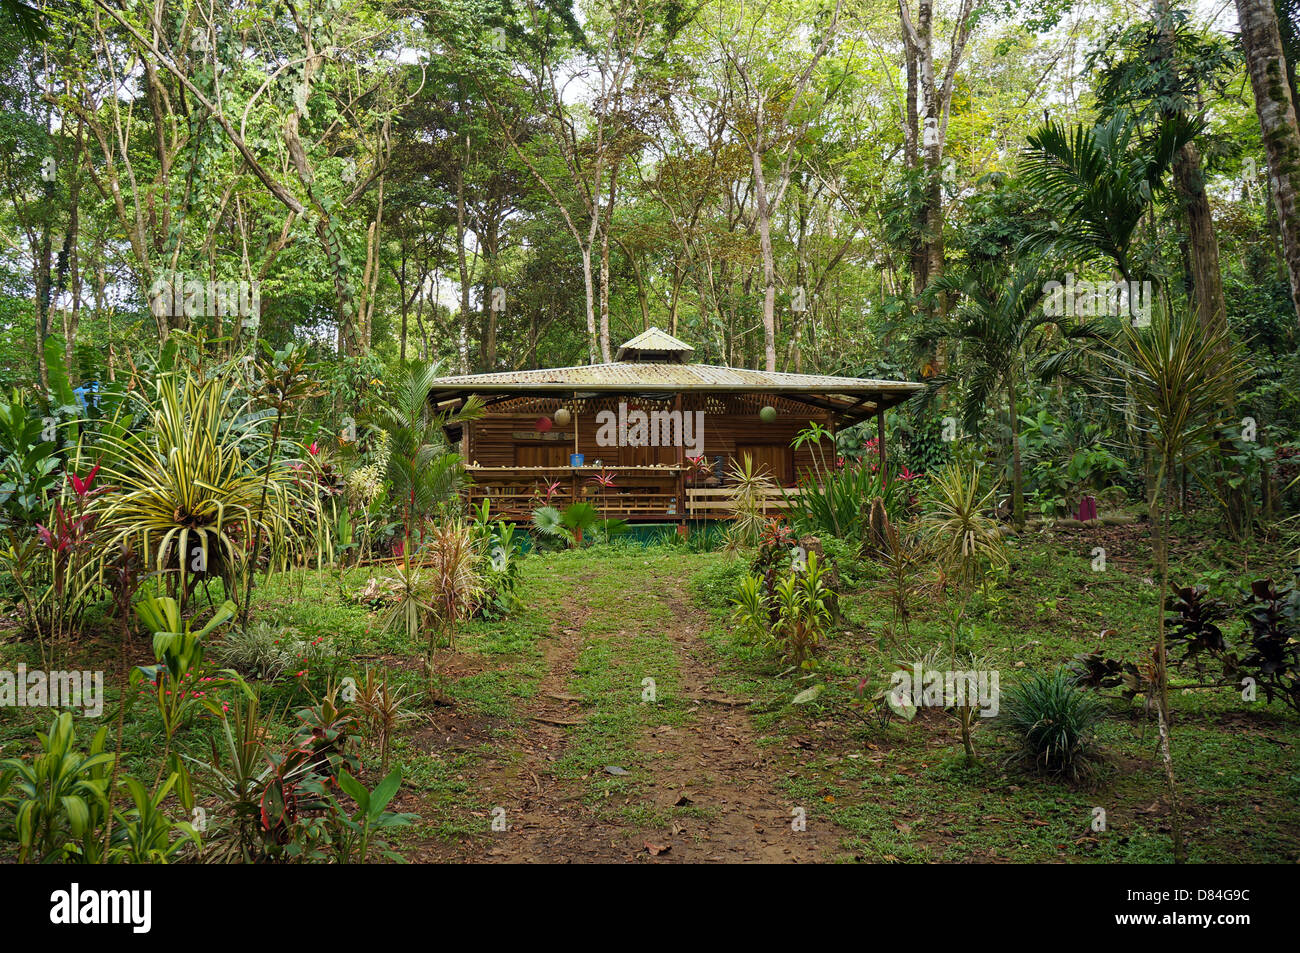 forest tree house jungle stockfotos forest tree house jungle bilder alamy. Black Bedroom Furniture Sets. Home Design Ideas